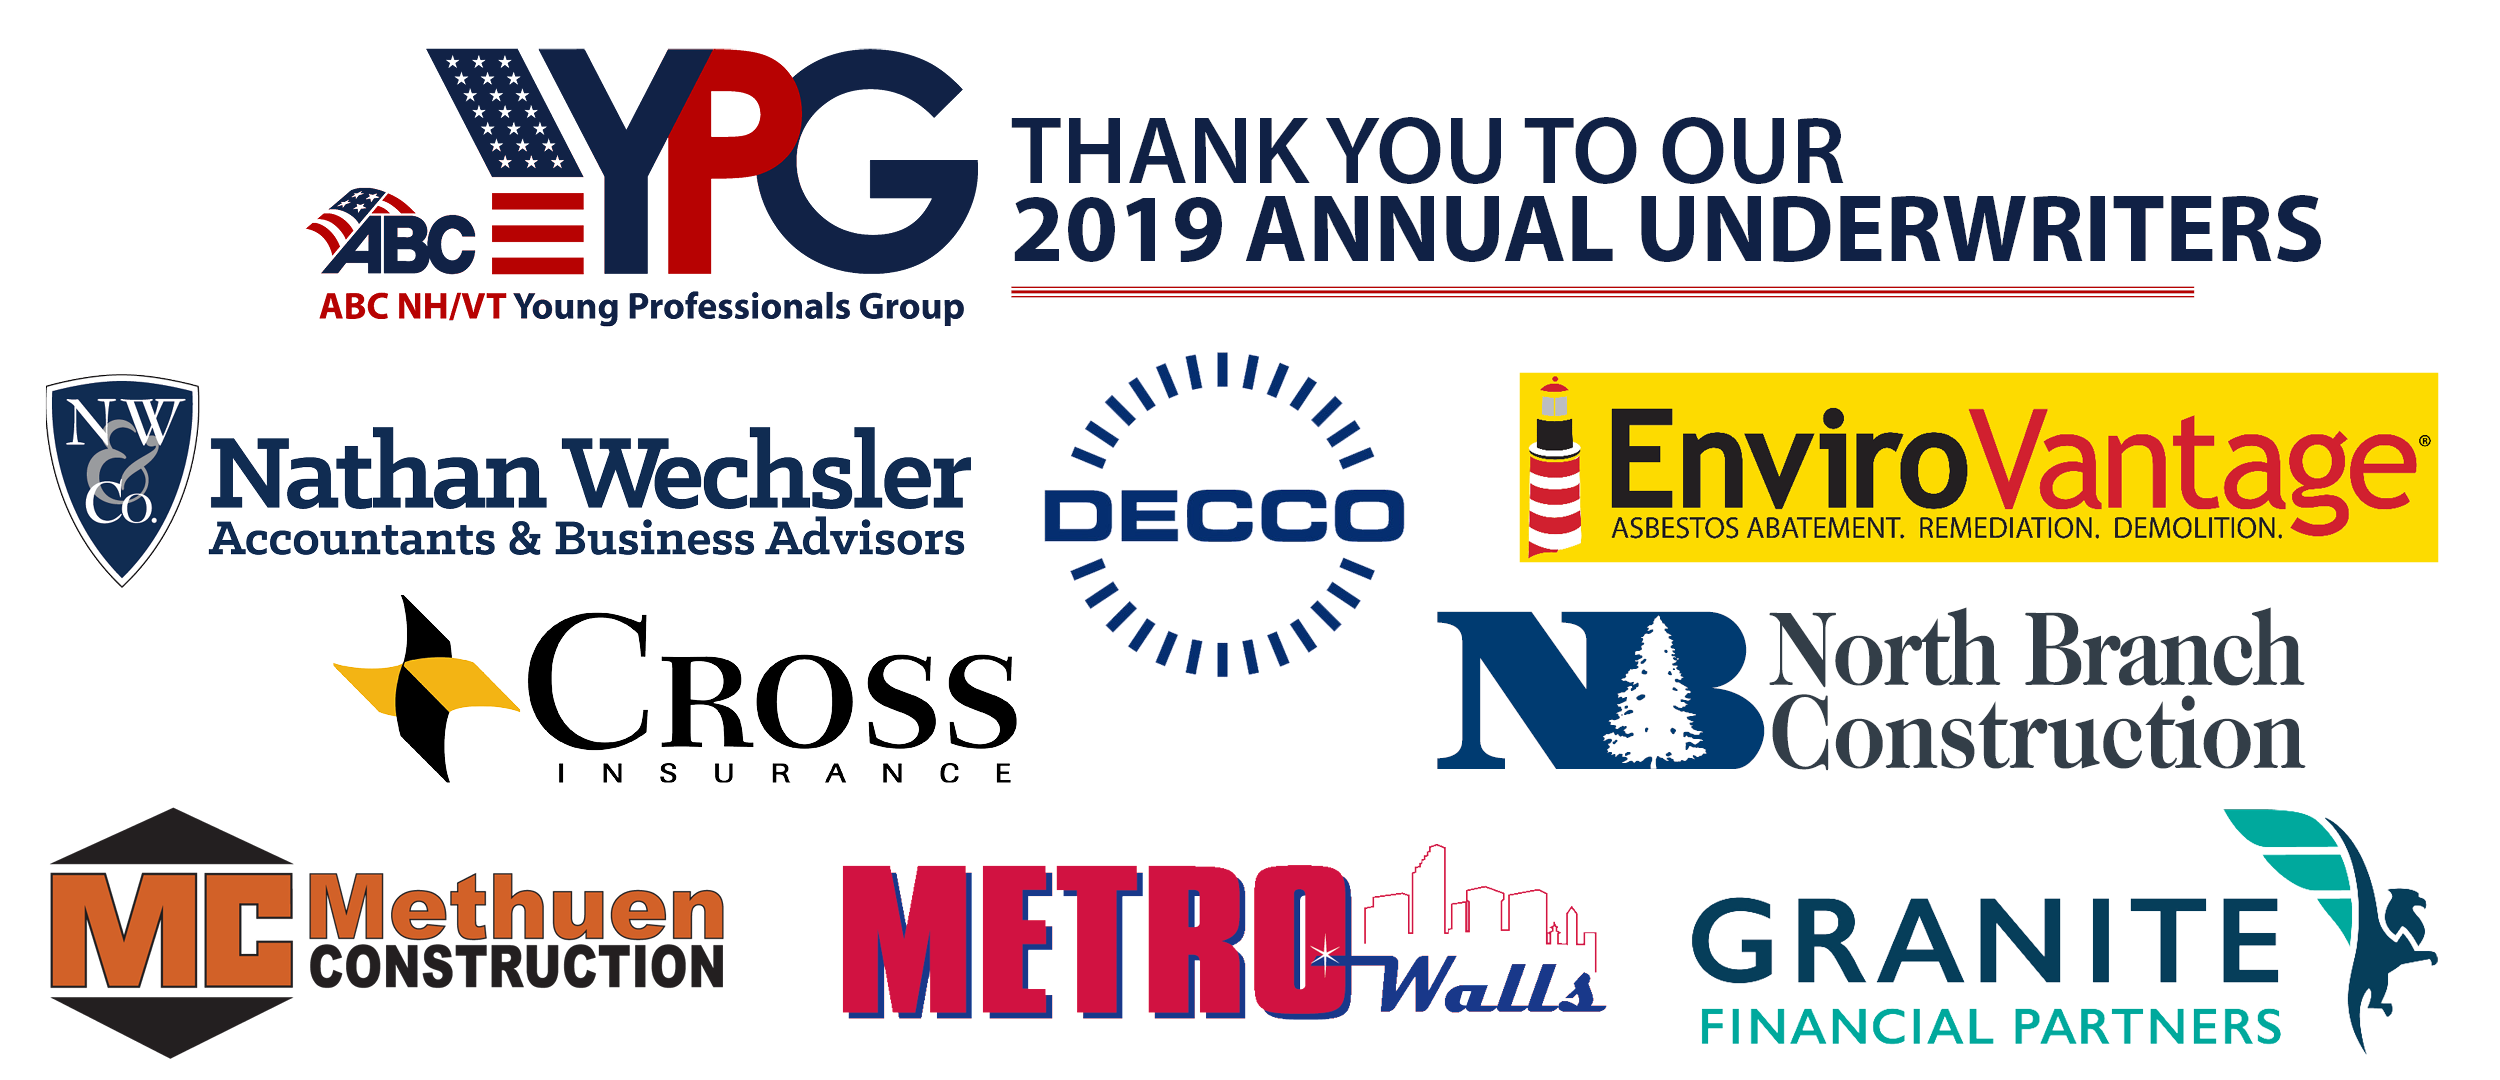 2019 Annual Underwriters Thank You - HORIZONTAL COLOR.png